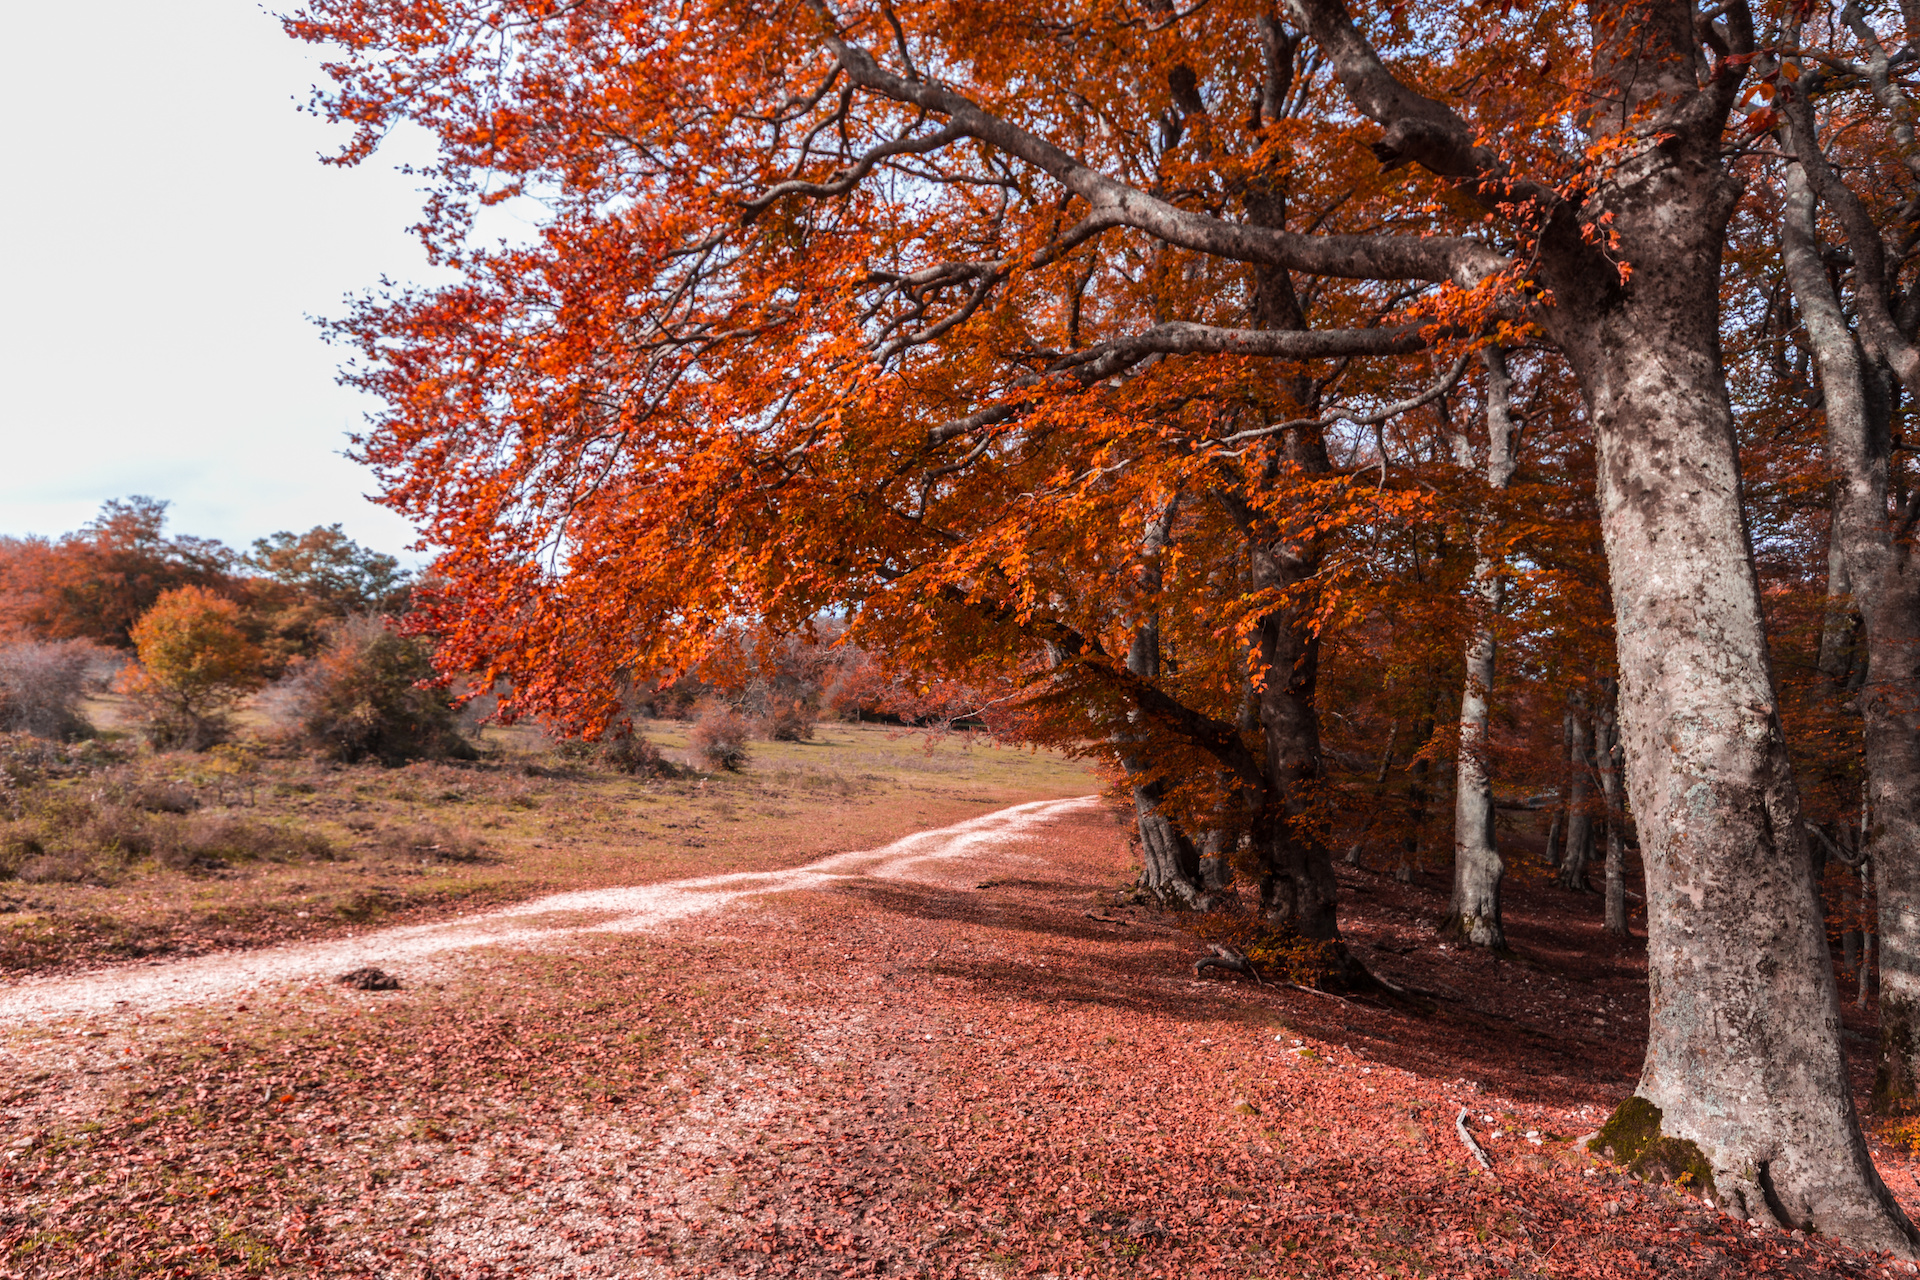 Fall foliage: in search of autumn leaves